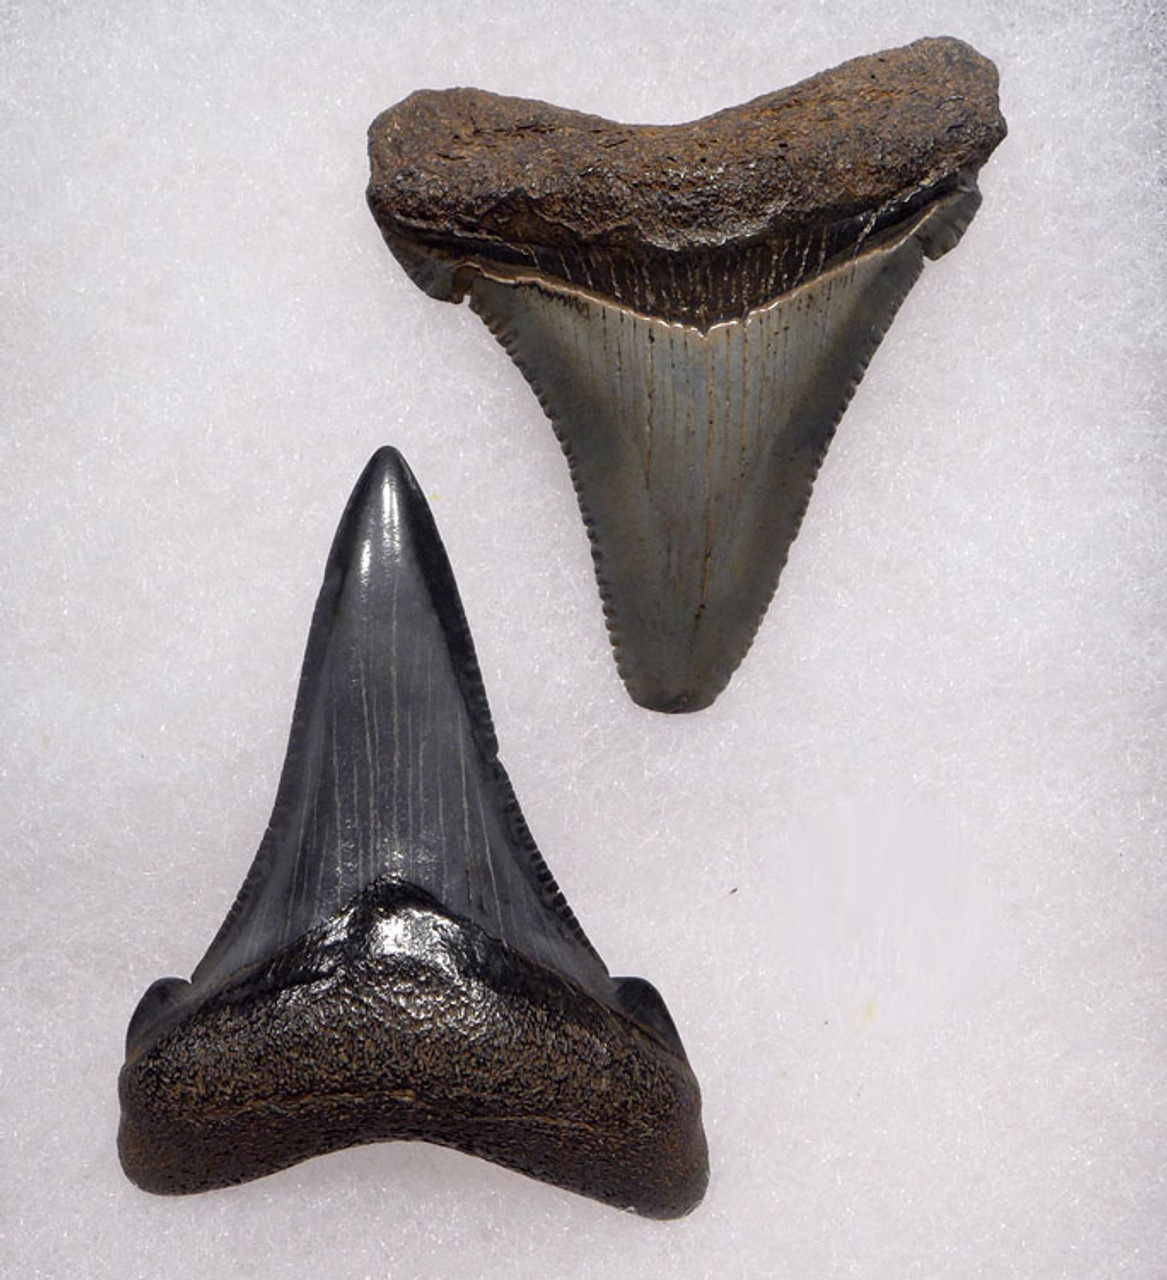 SHX053 - PAIR OF UPPER AND LOWER JAW CARCHAROCLES ANGUSTIDENS FOSSIL SHARK TEETH